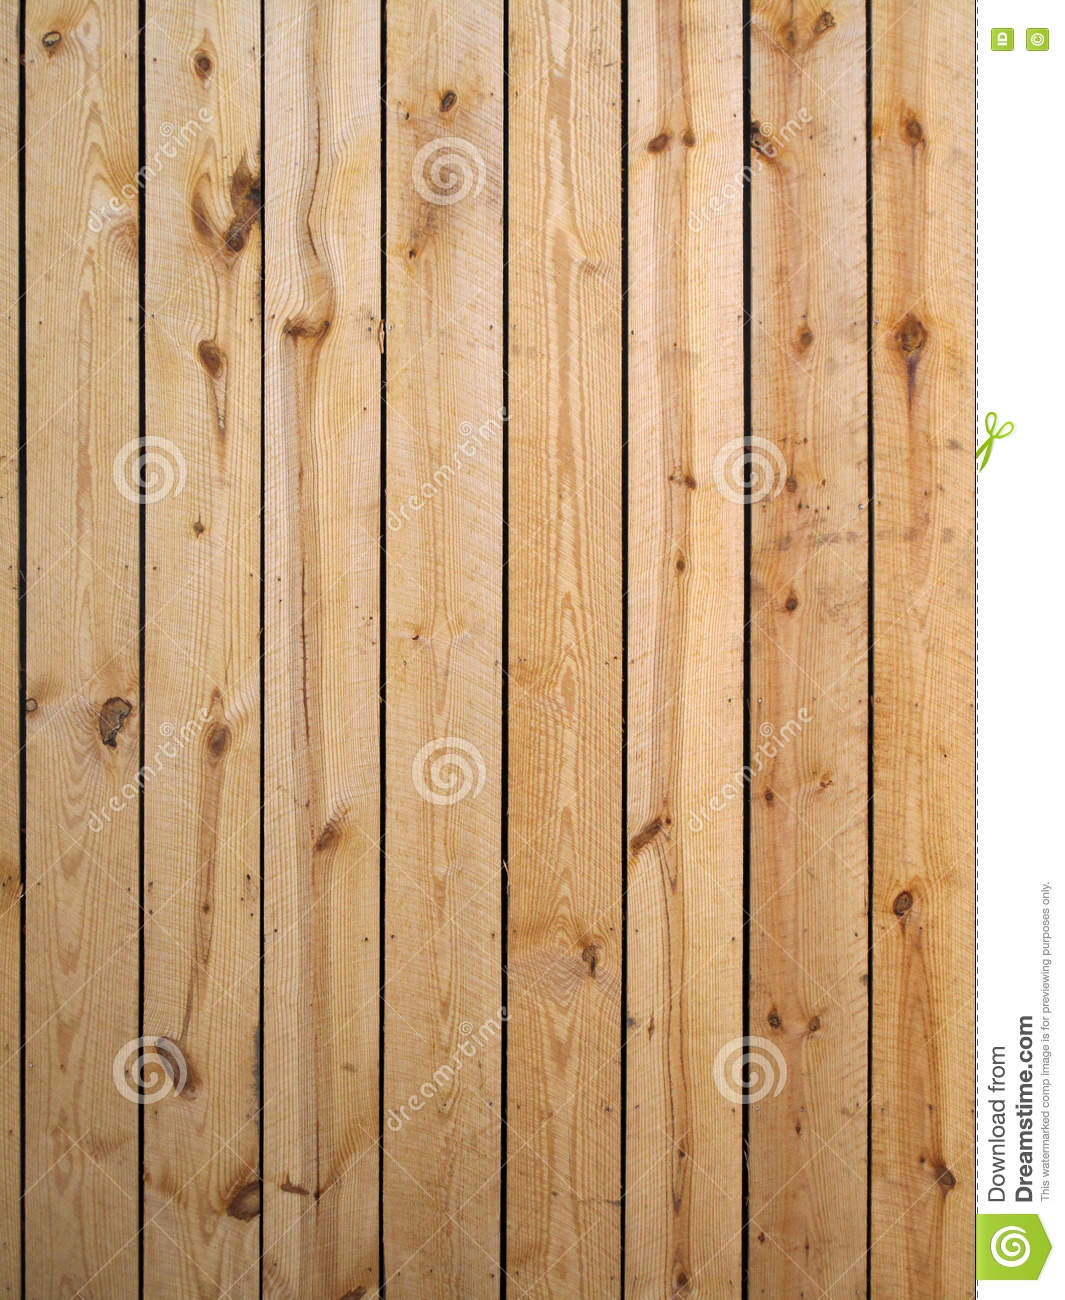 Pine Siding Rough Textured Exterior Pine Siding Stock Image Image Of Grooves